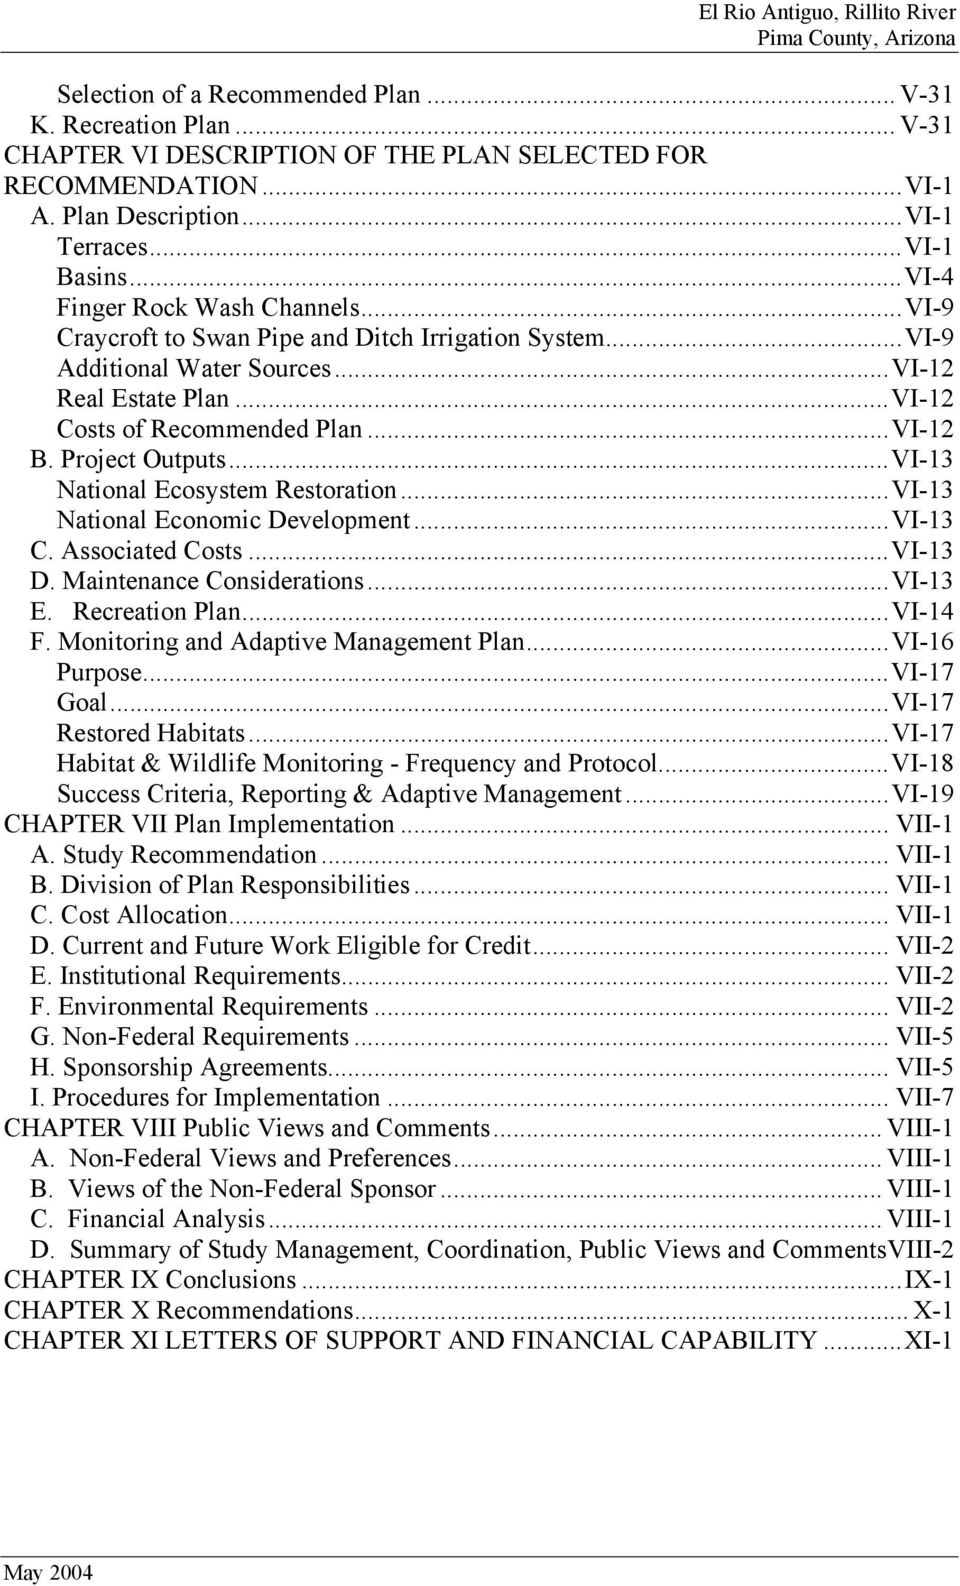 Project Outputs...VI-13 National Ecosystem Restoration...VI-13 National Economic Development...VI-13 C. Associated Costs...VI-13 D. Maintenance Considerations...VI-13 E. Recreation Plan...VI-14 F.